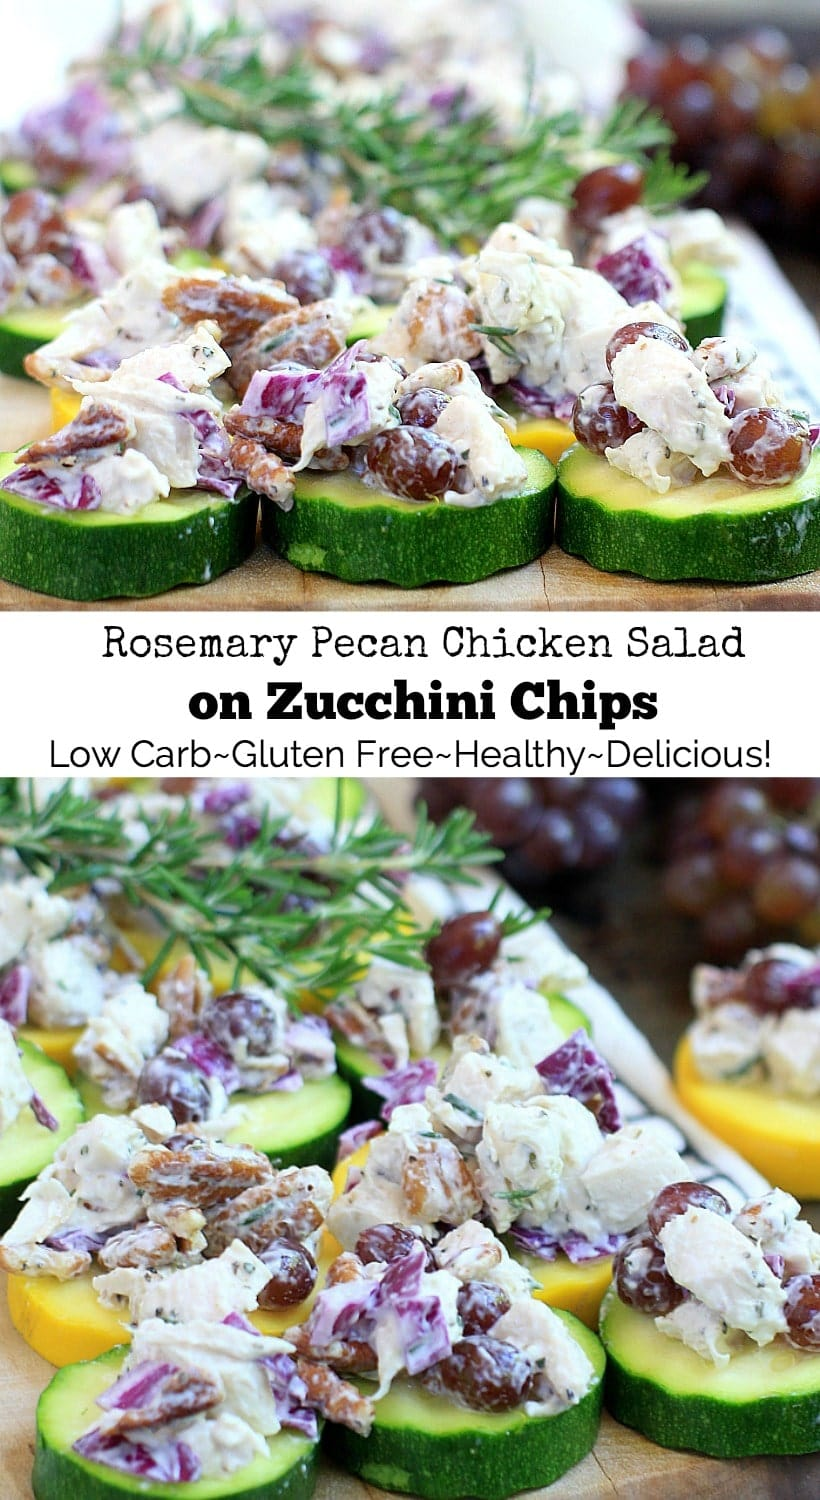 Rosemary Pecan Chicken Salad on Zucchini Chips. Low carb, gluten free, healthy, and delicious!